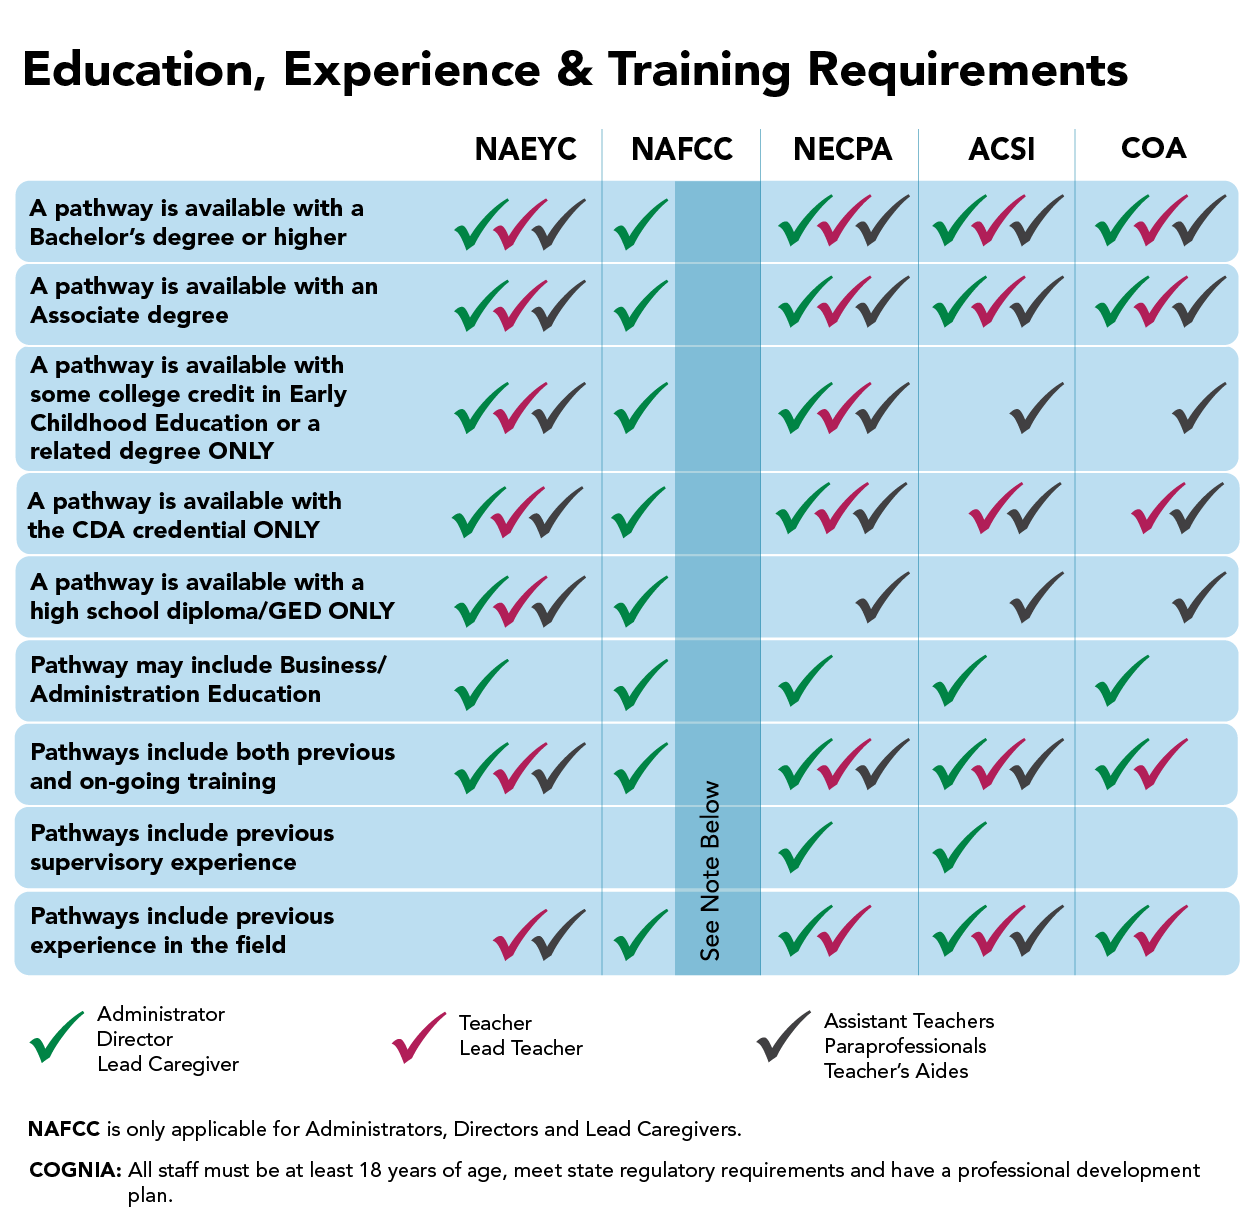 blue table with Accrediation Education, Experience & Training Requirements At-A-Glance information